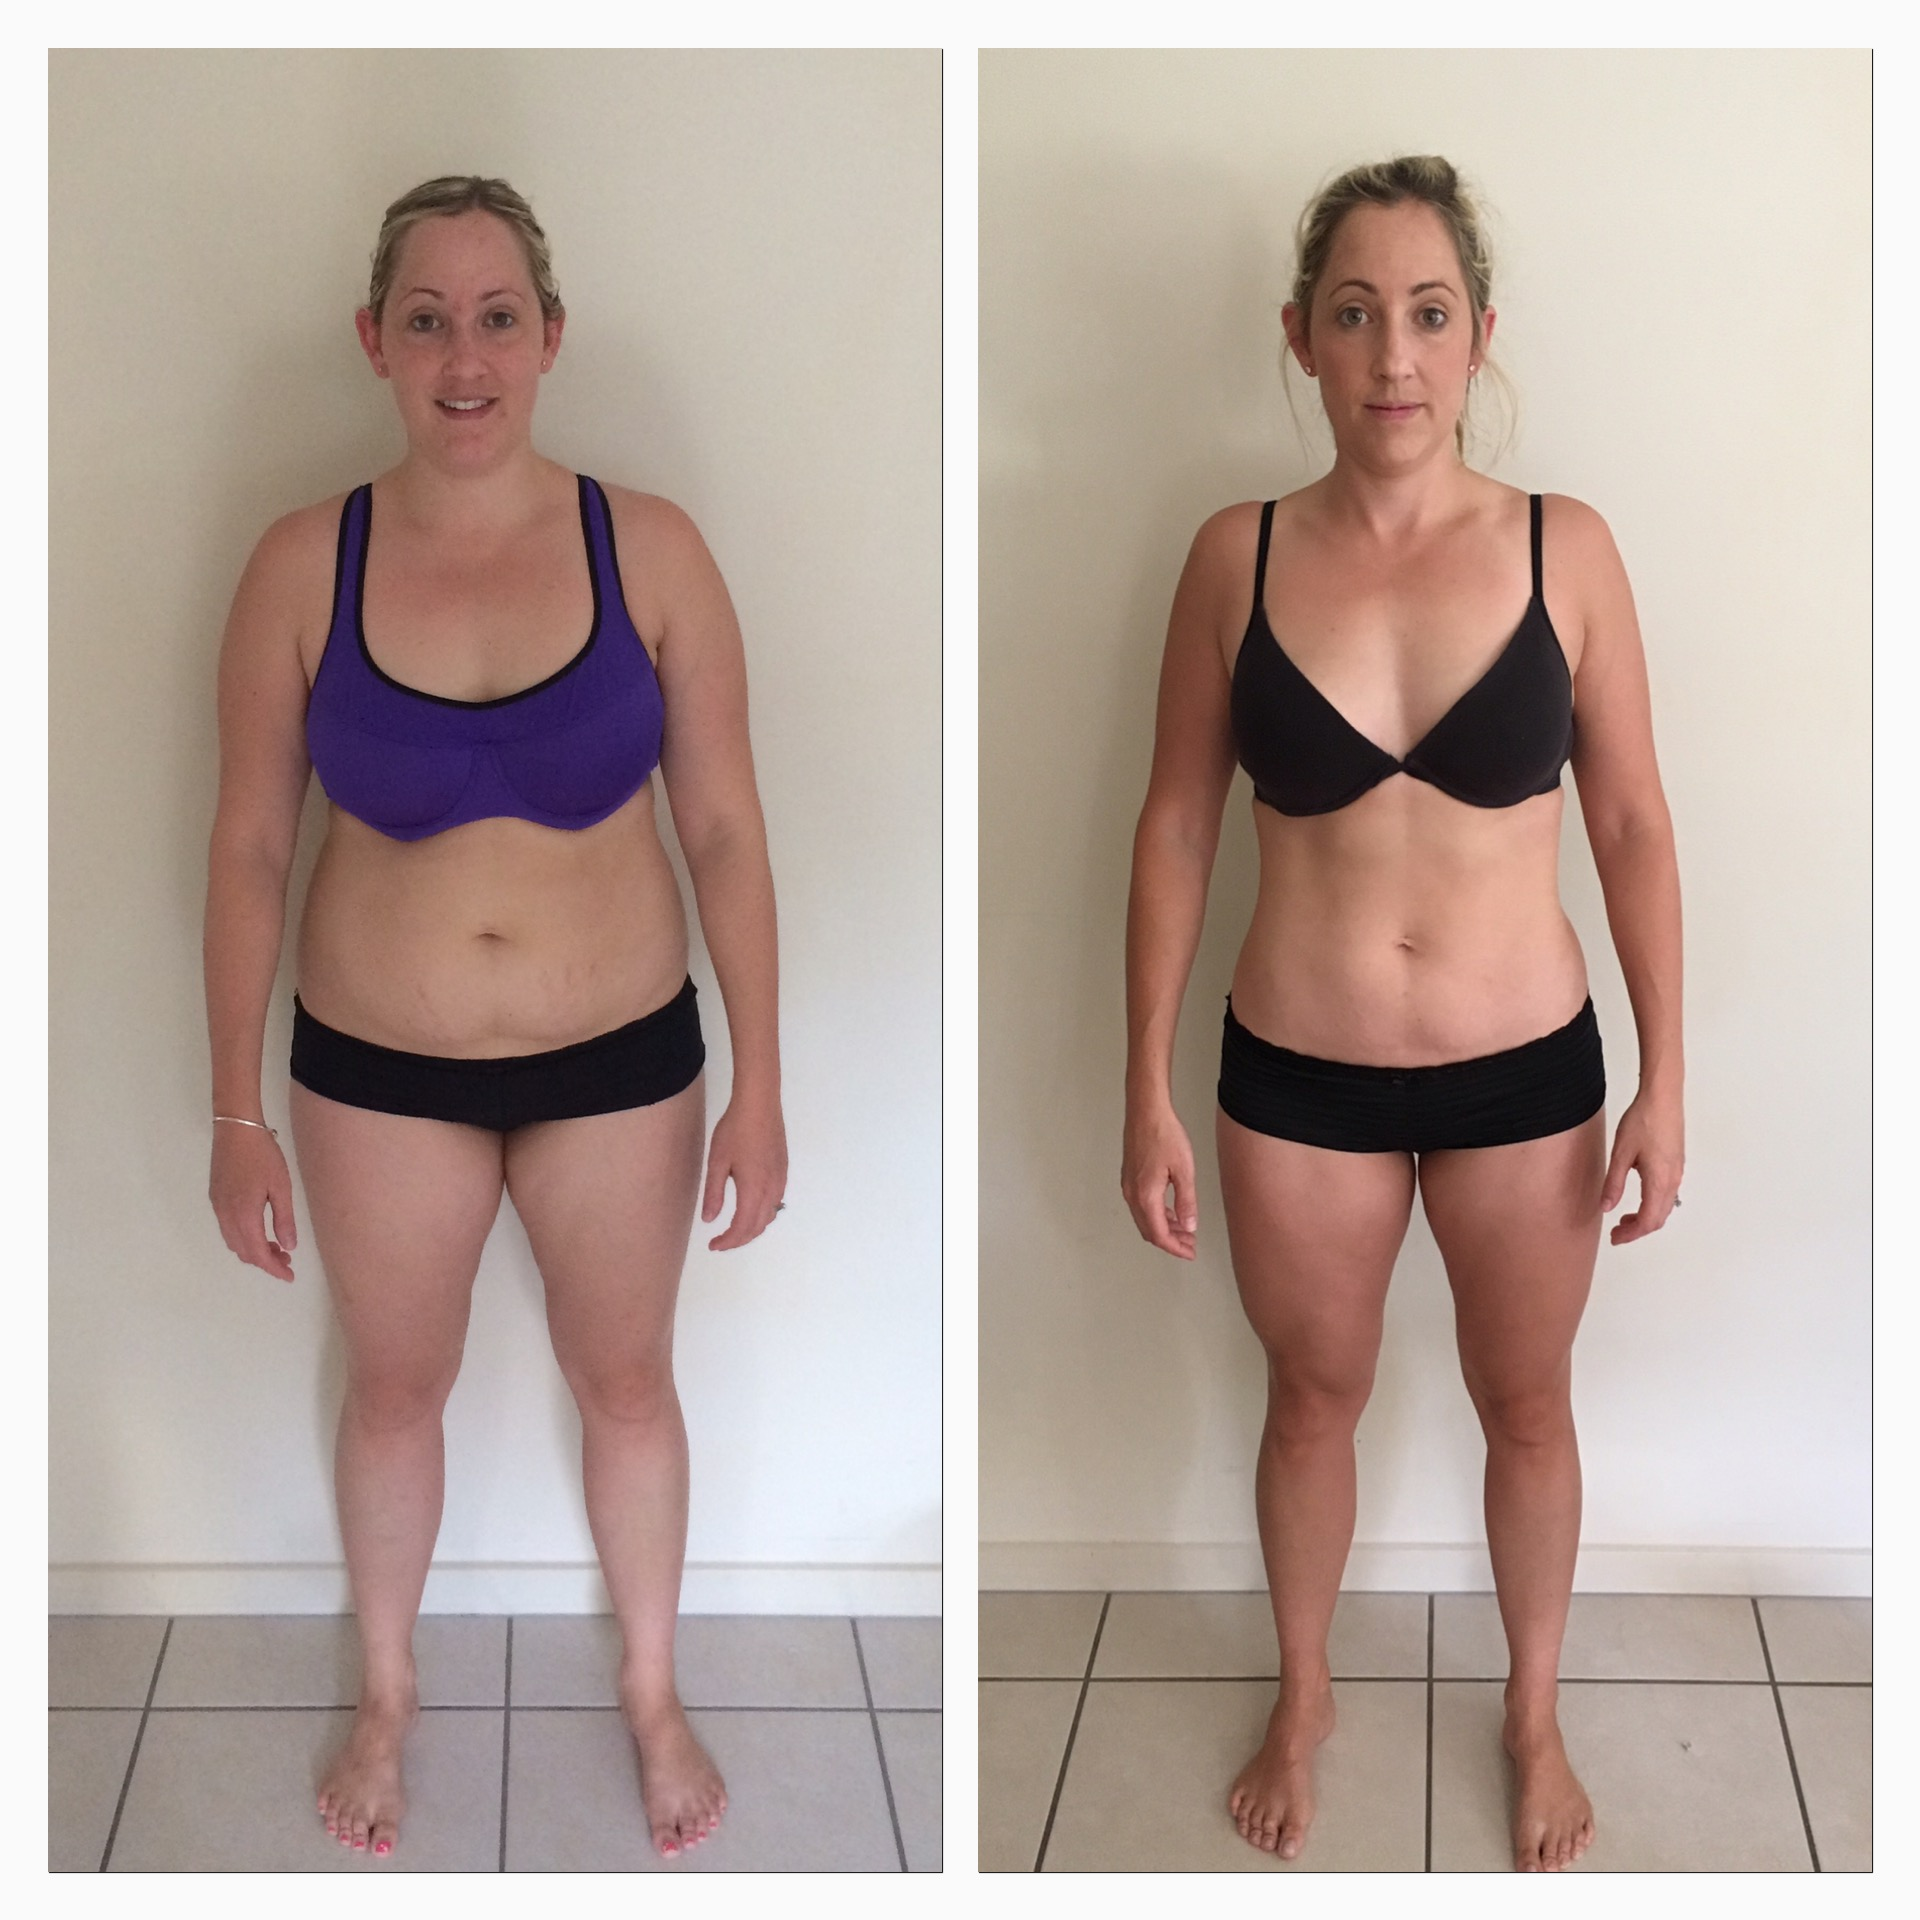 fat loss weight training nutritional coaching personal trainer transformation 14.JPG